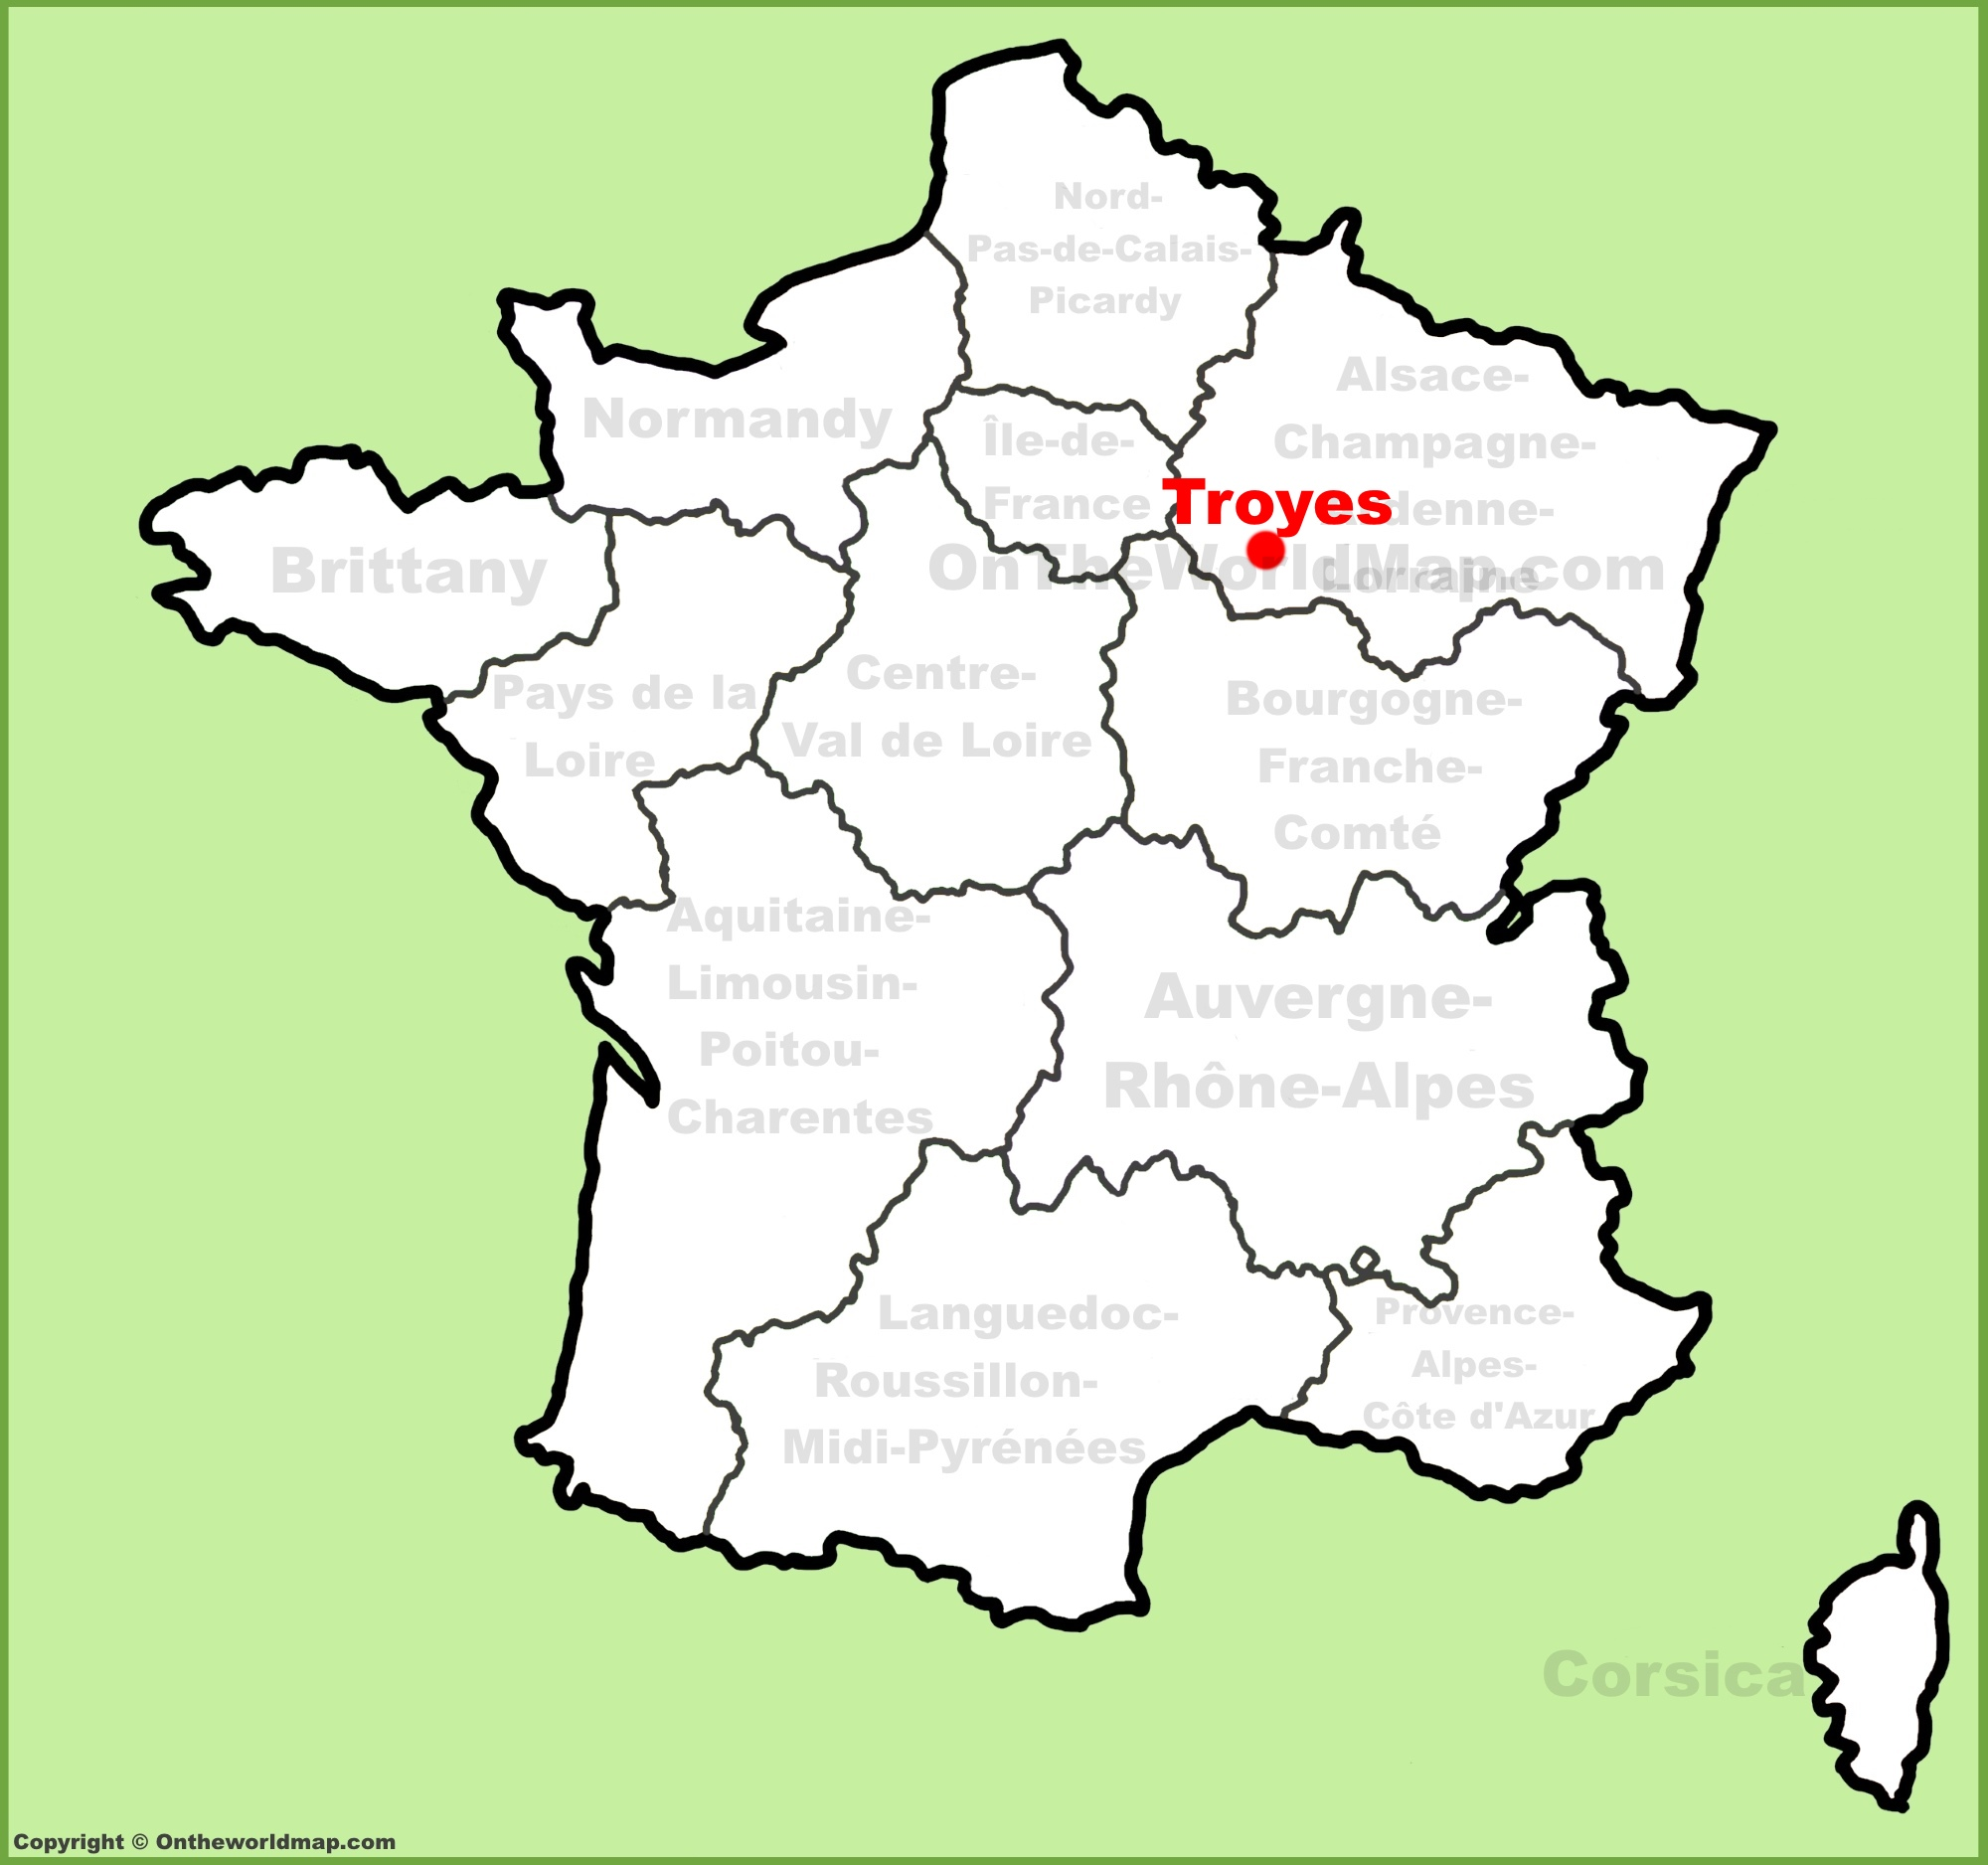 Troyes location on the France map